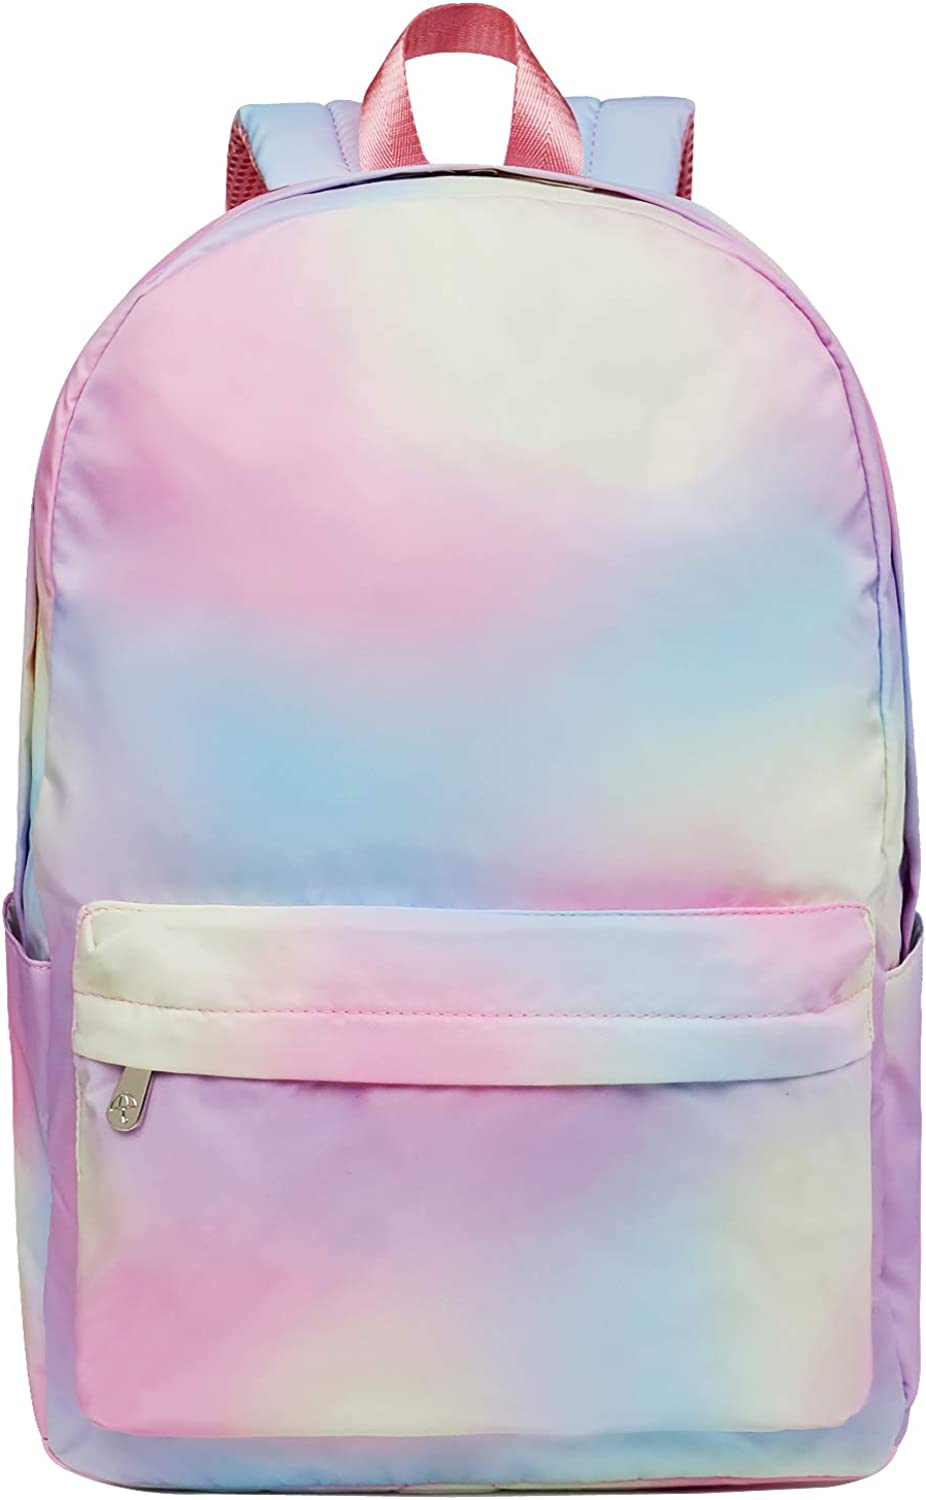 FITMYFAVO Backpack for Girls Lightweight School bag with compartment Waterproof Daypack Bookbag fit 15 laptop